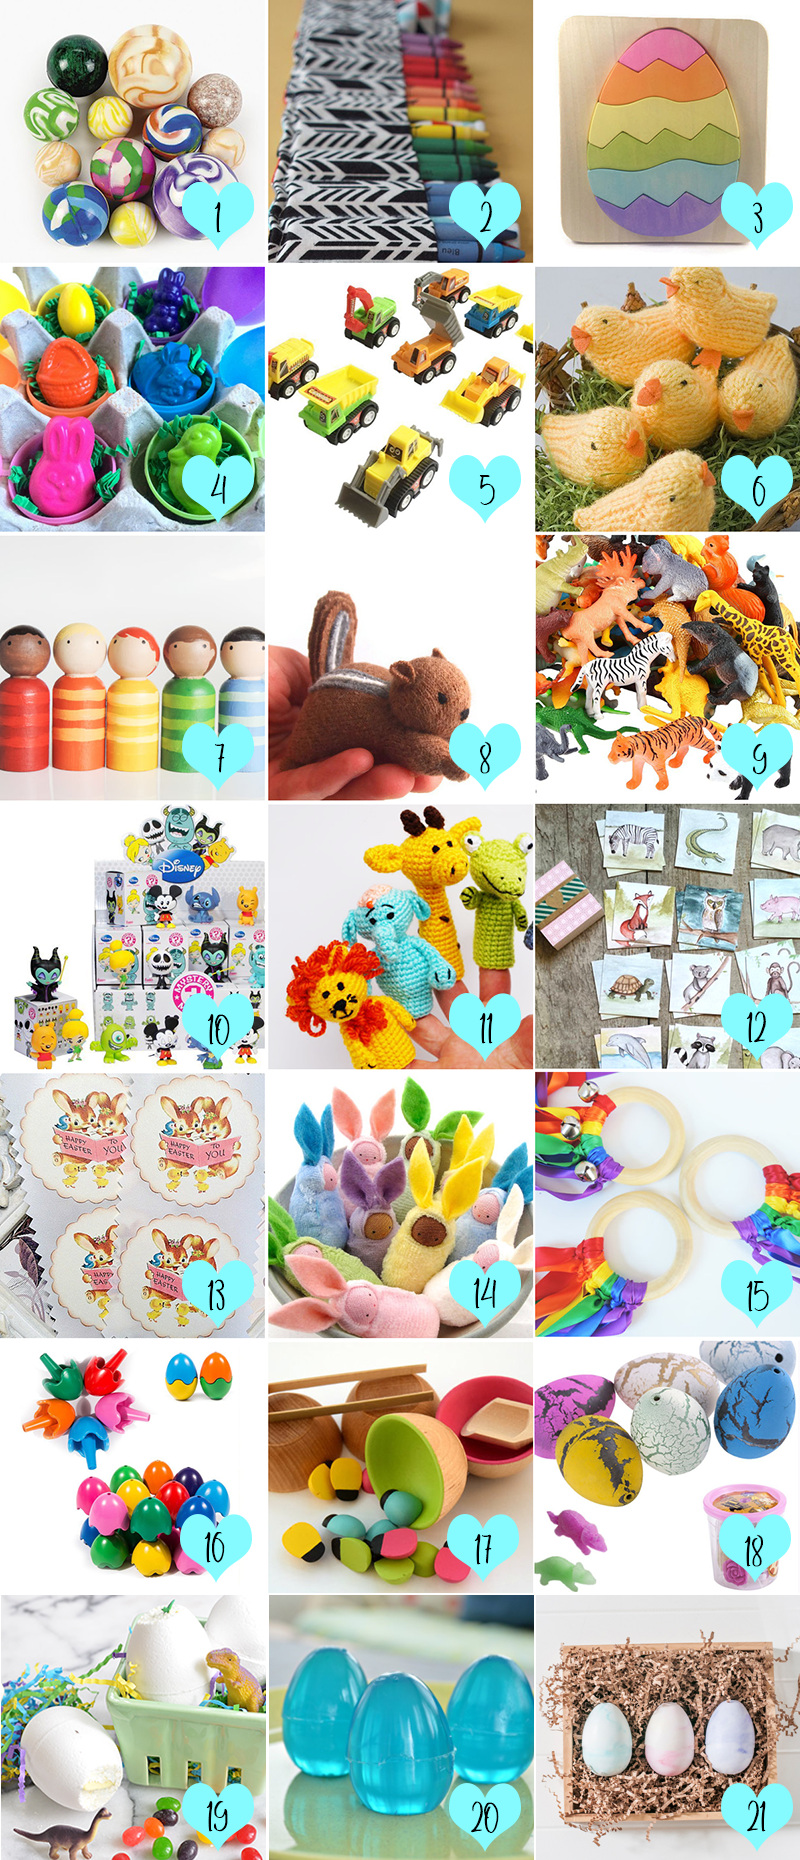 Candy free easter treats mary makes good candy free easter treats negle Image collections